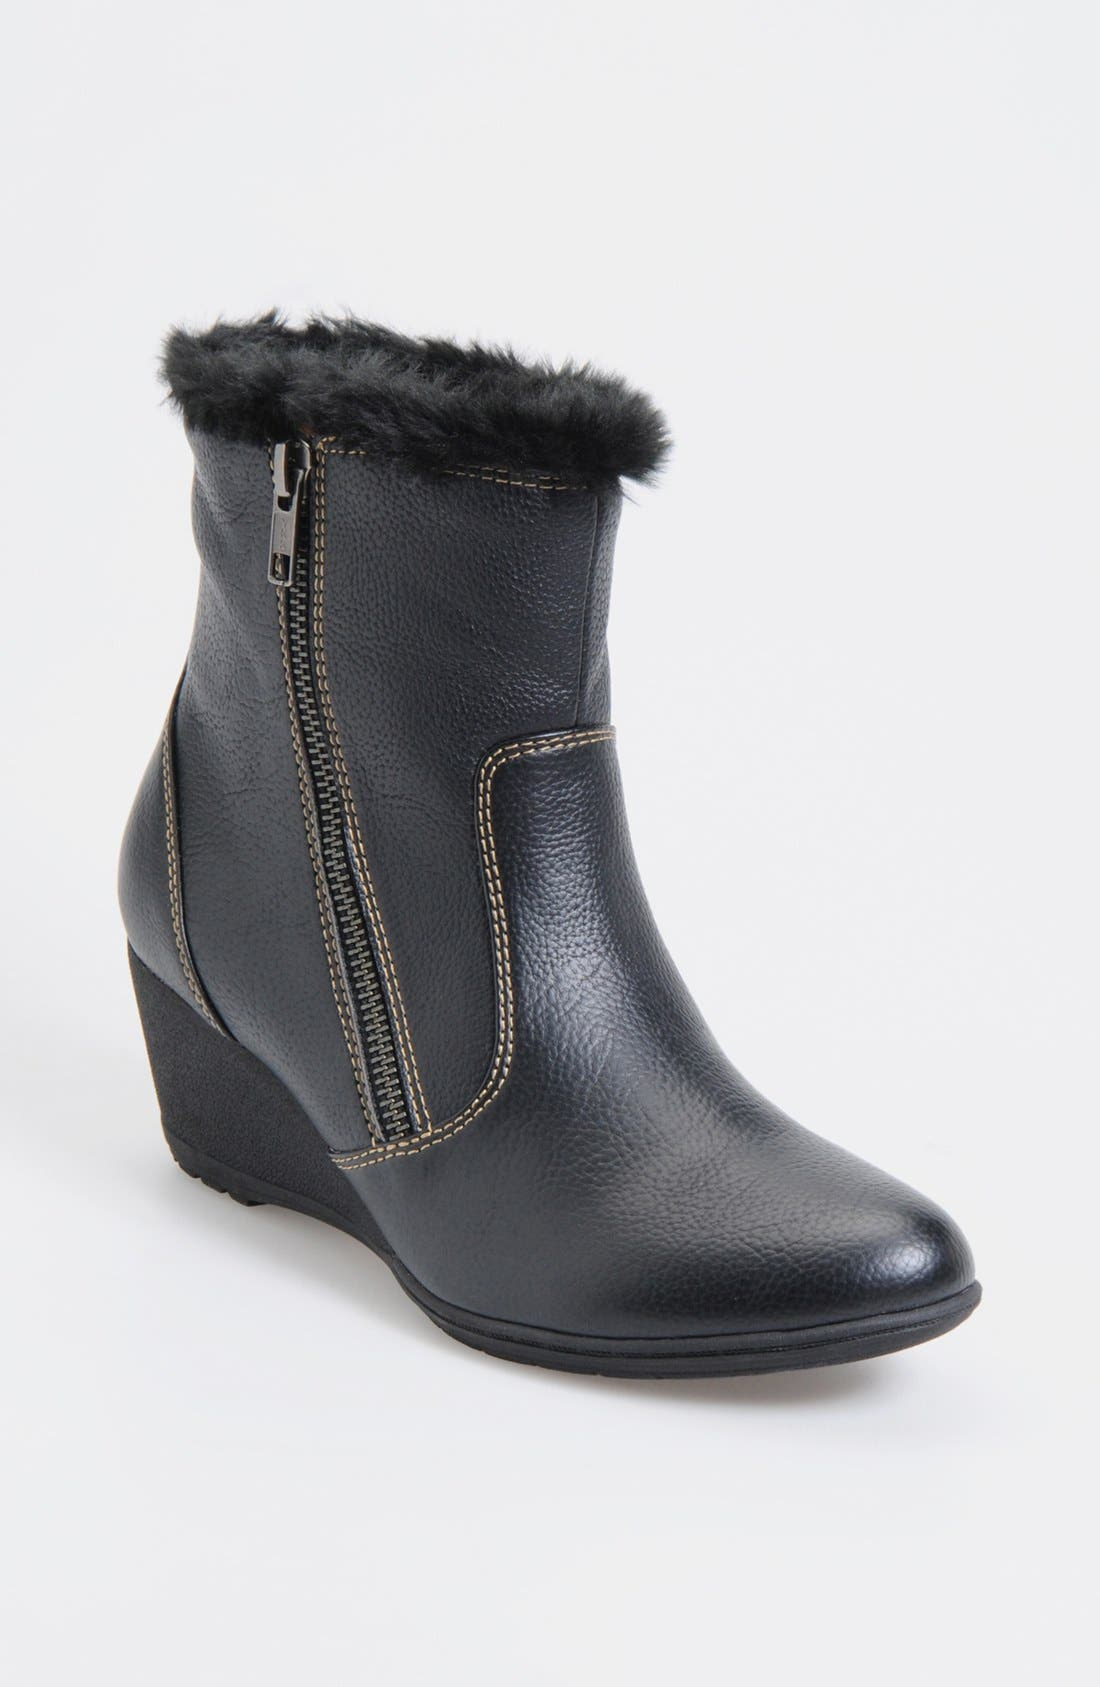 Main Image - Softspots 'Odele' Boot